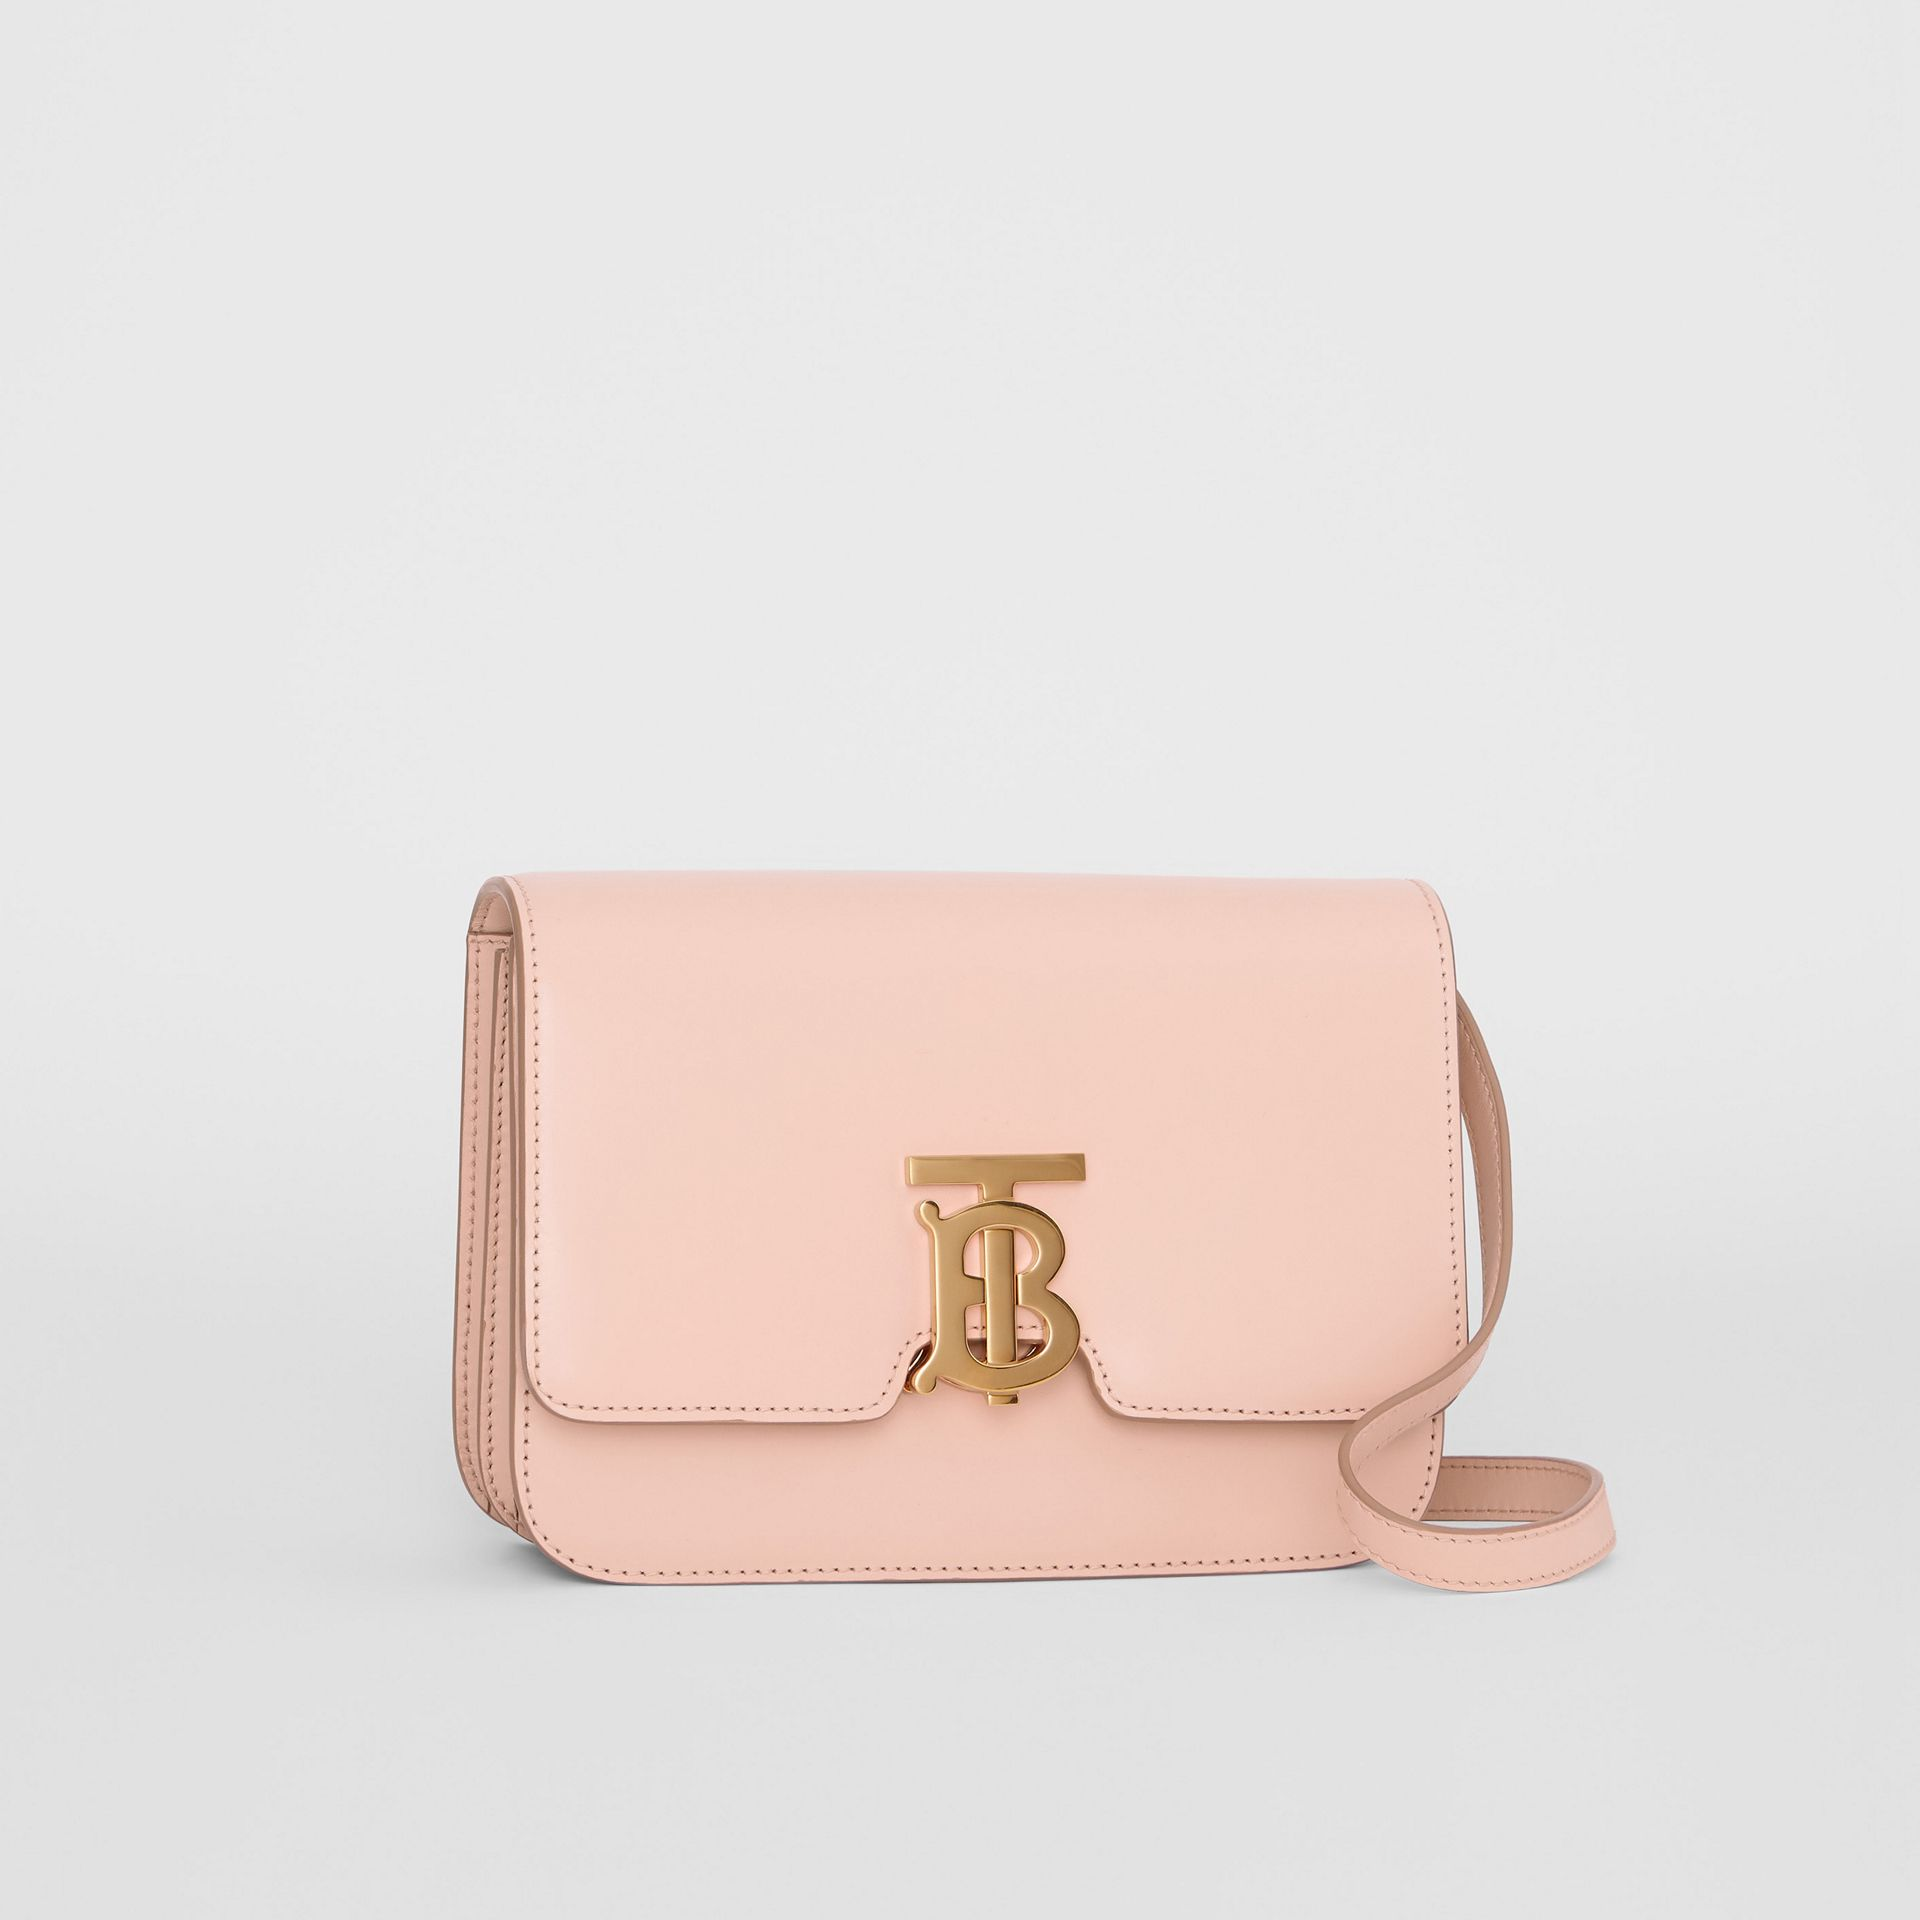 Petit sac TB en cuir (Beige Rose) - Femme | Burberry - photo de la galerie 6